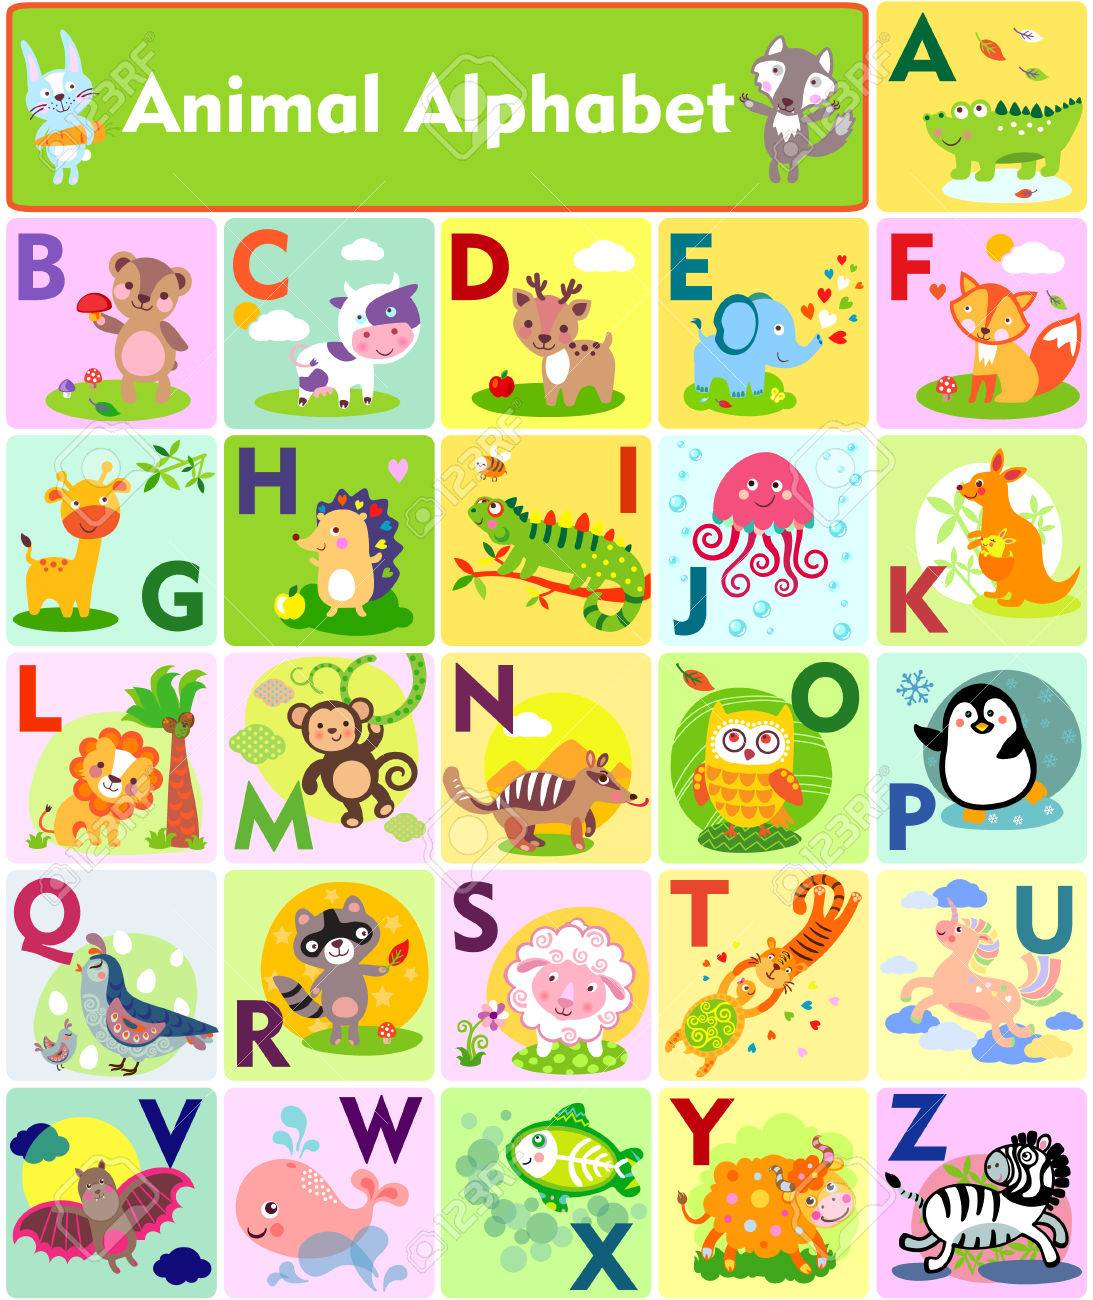 A-Z Animals List